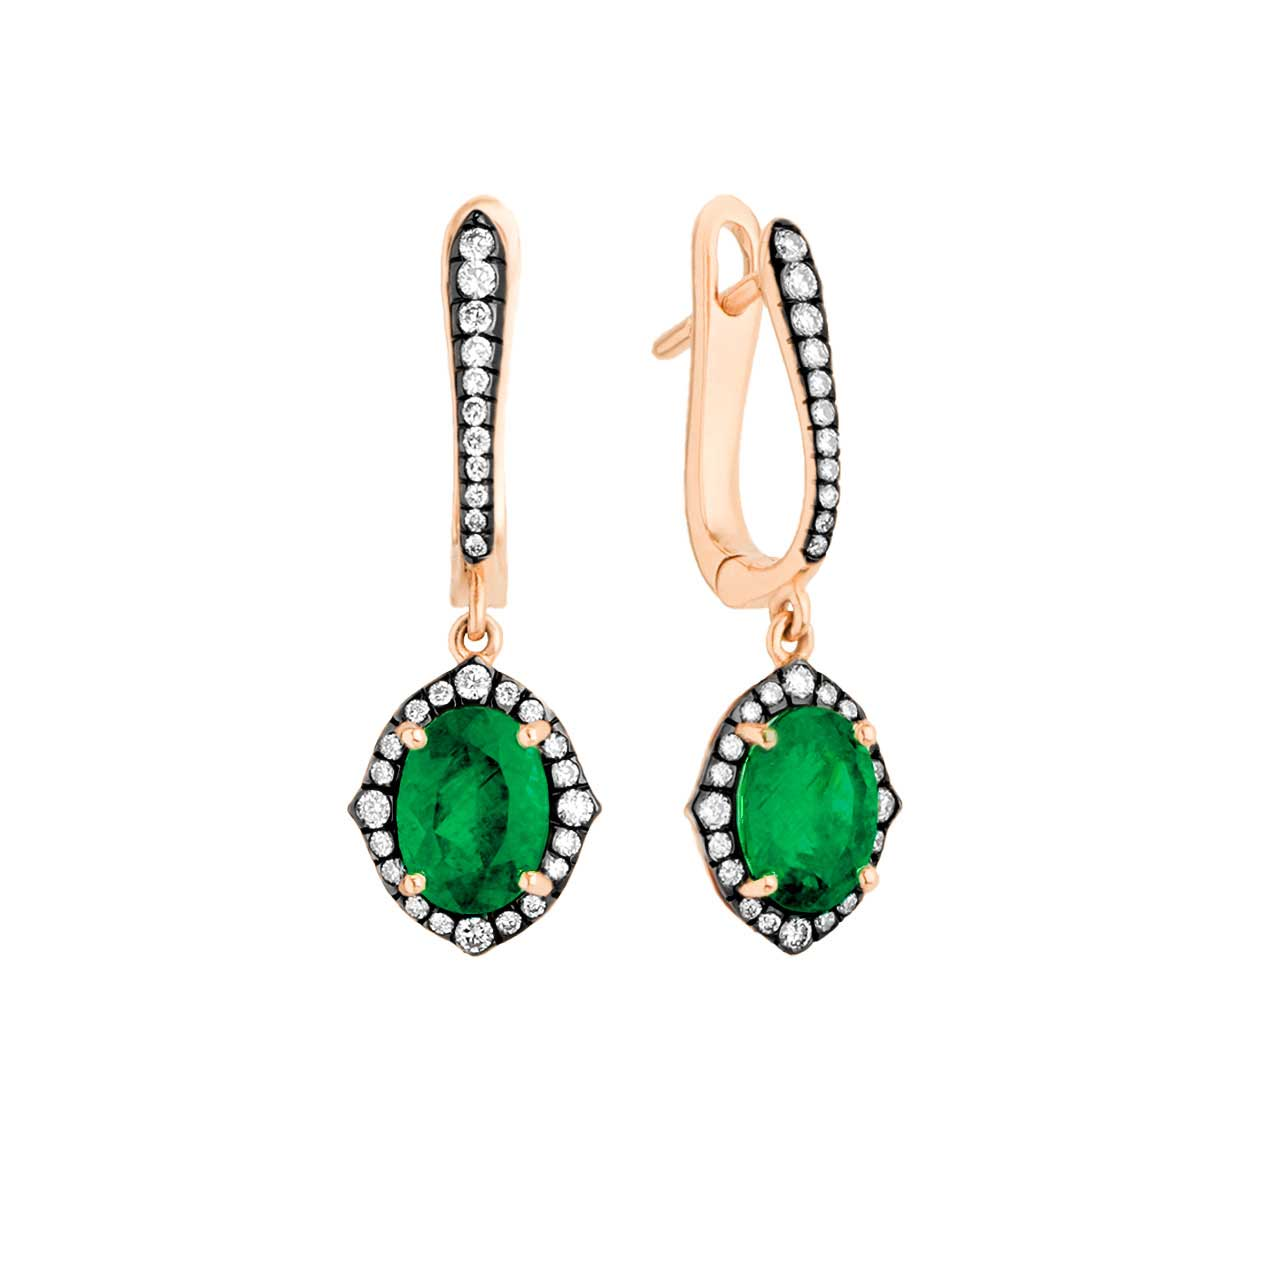 Emerald 18K gold earrings 1